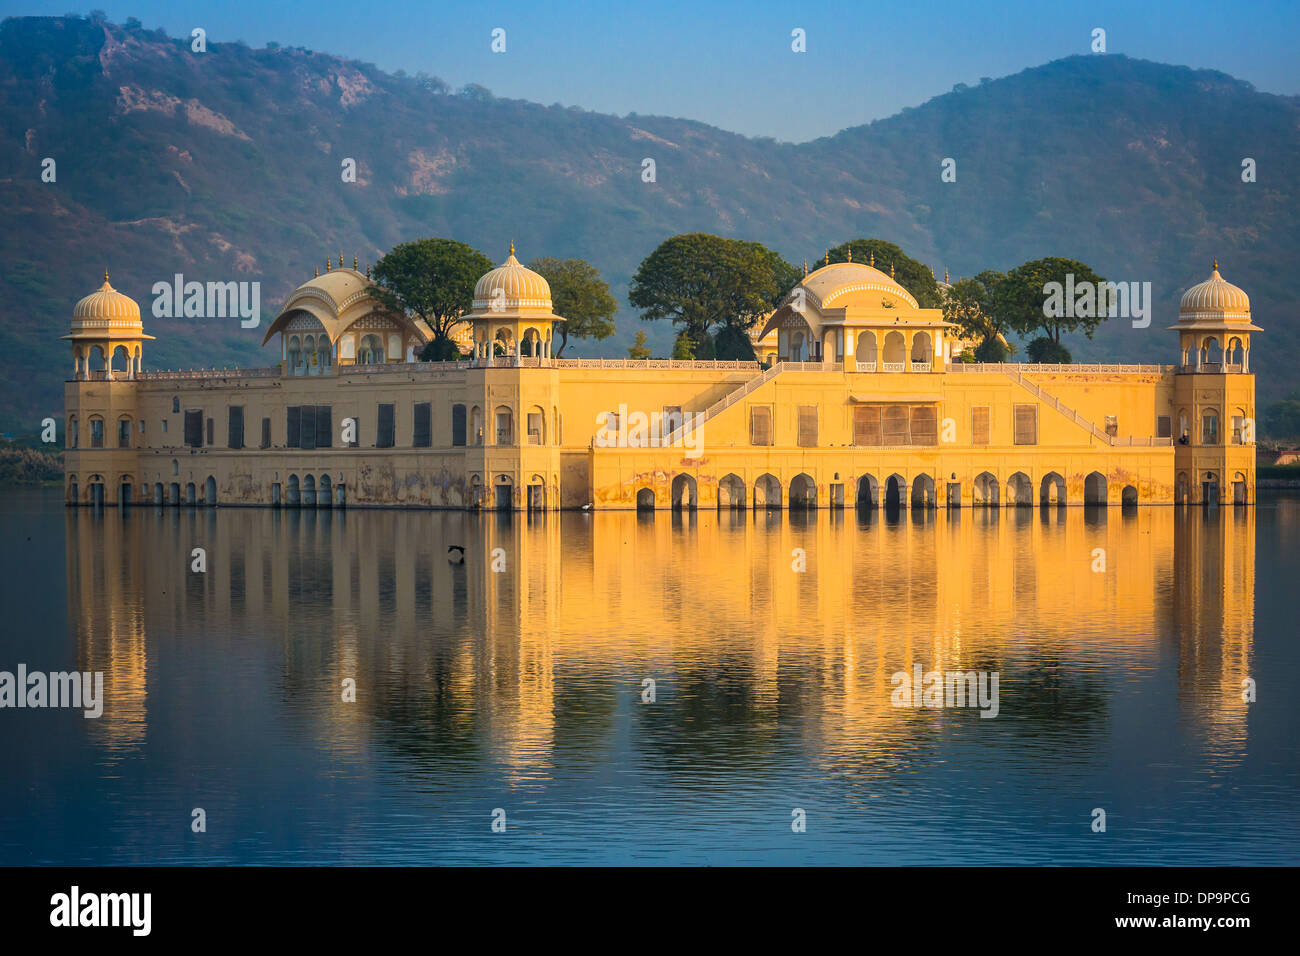 Jal Mahal (meaning 'Water Palace') is a palace located in the middle of the Man Sagar Lake in Jaipur, India - Stock Image